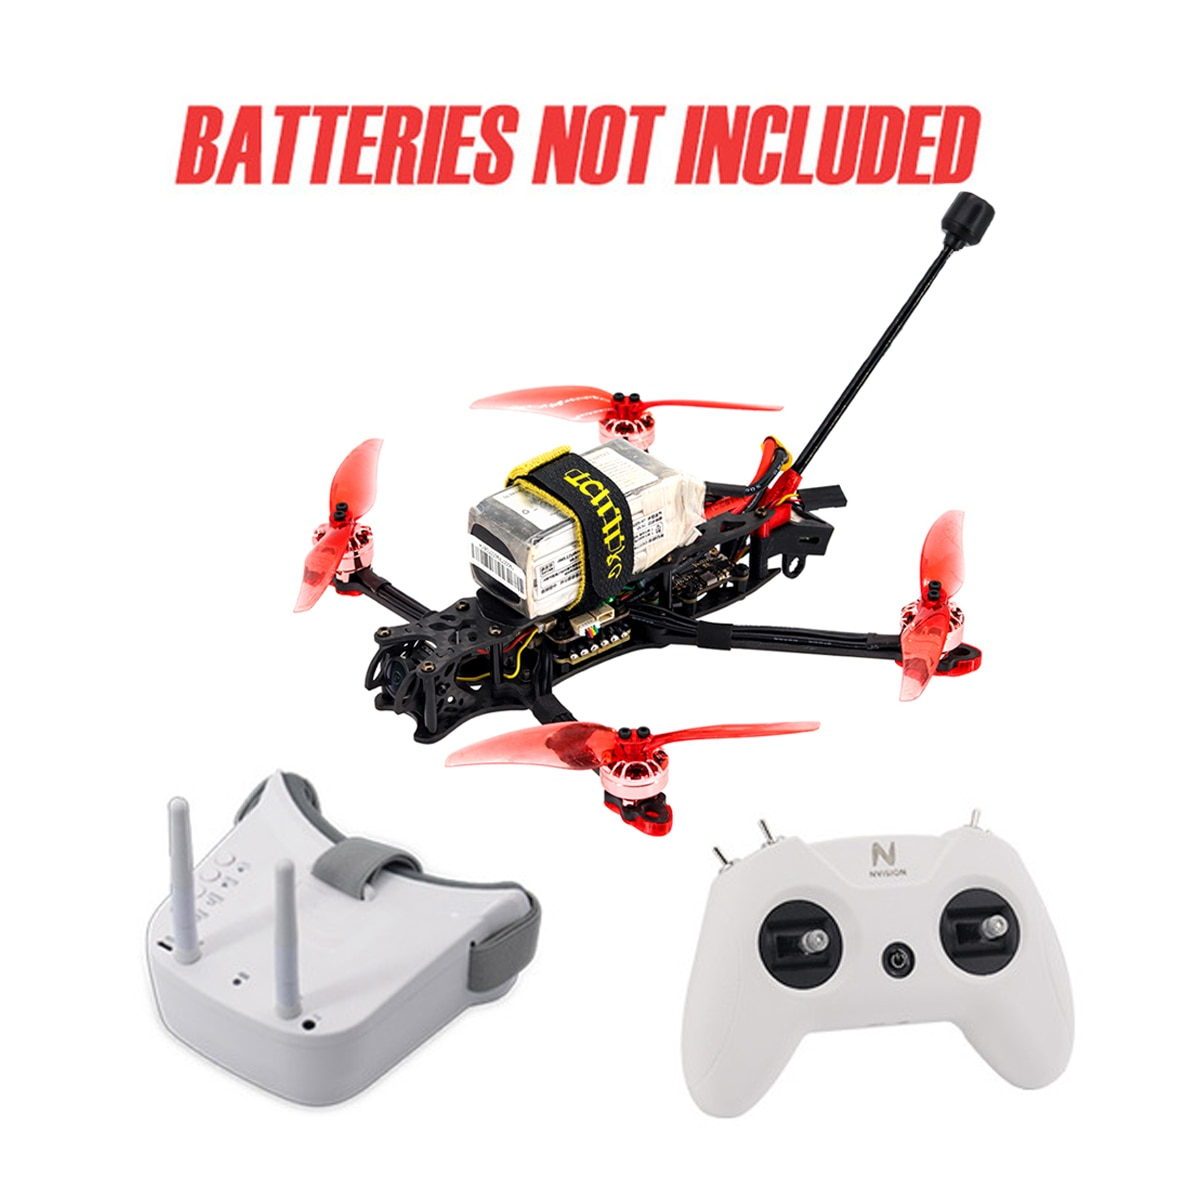 TCMMRC fpv drone kit drone Quadcopter with camera professional rc drone Fpv goggles RC Airplanes FPV 3/4/5 inch Drone multirotor enlarge